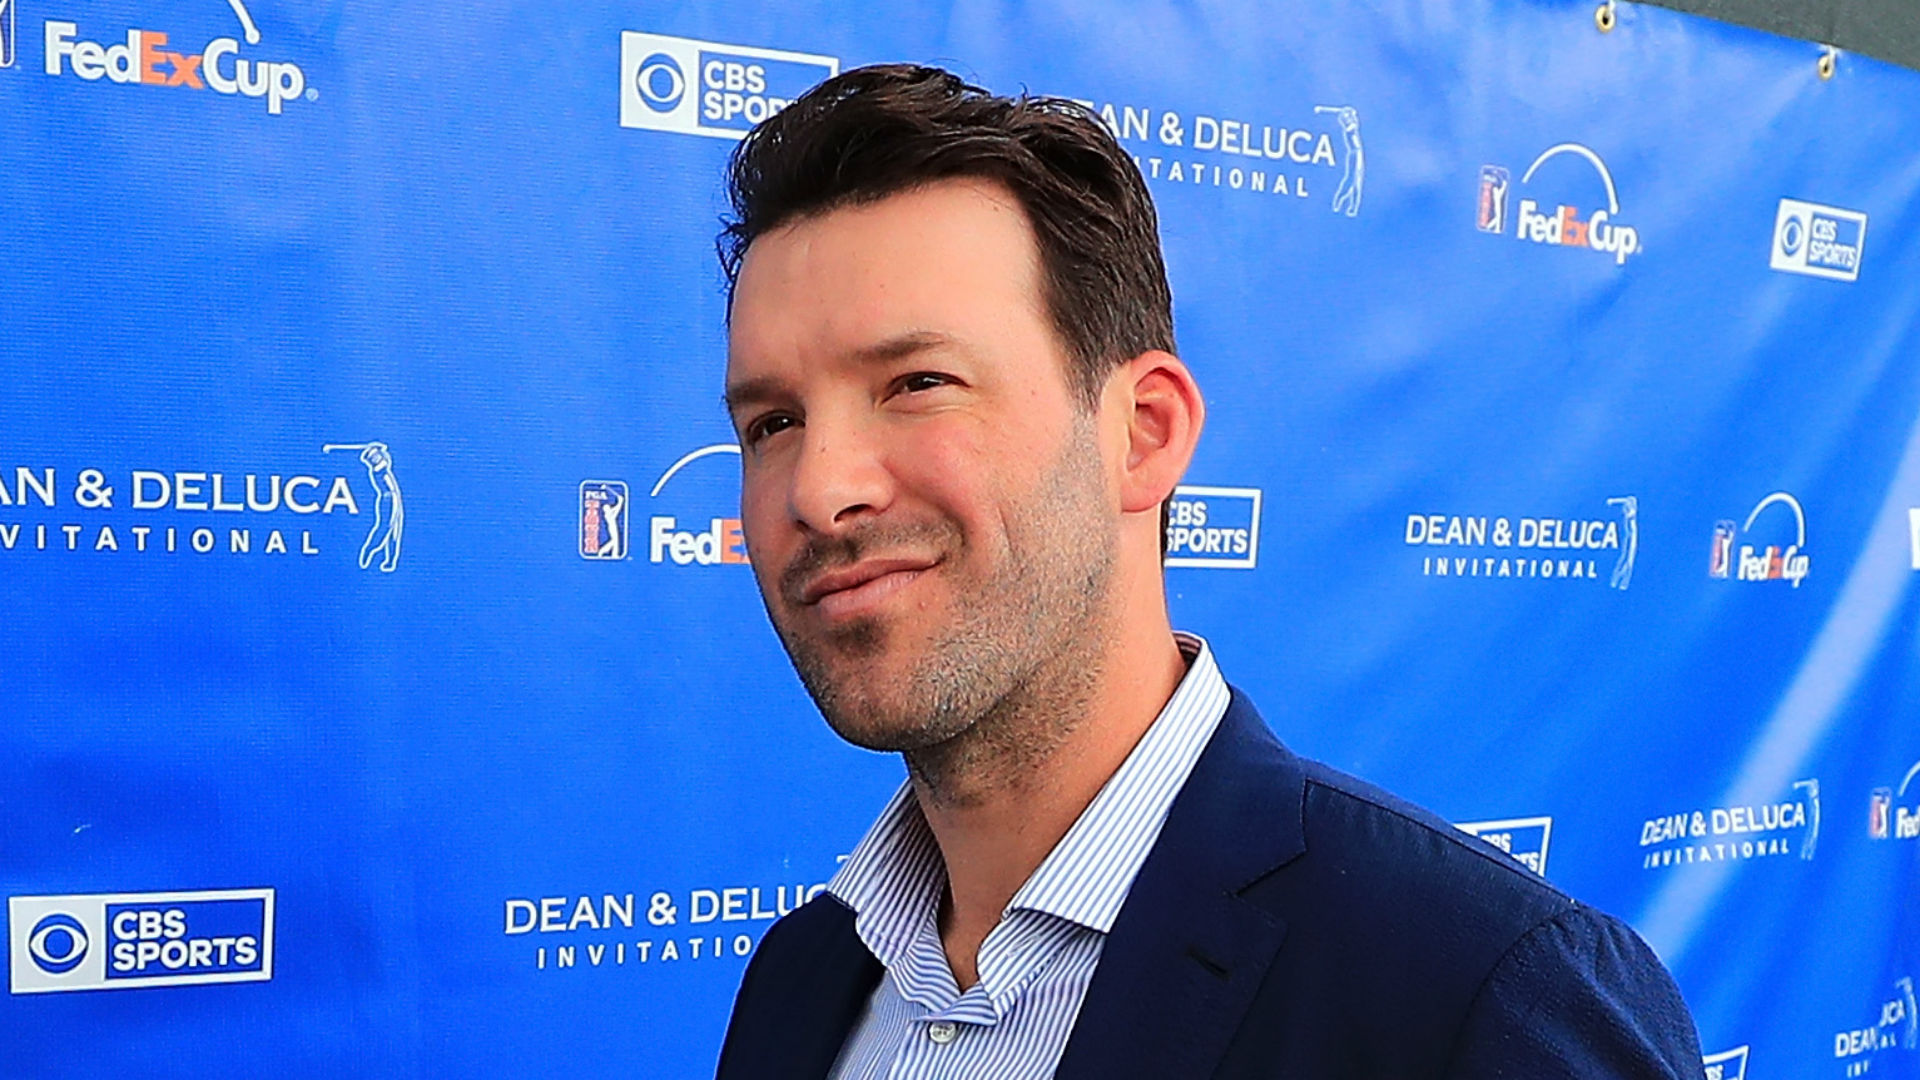 Tony Romo wants record $10 million a year to stay at CBS, sources say